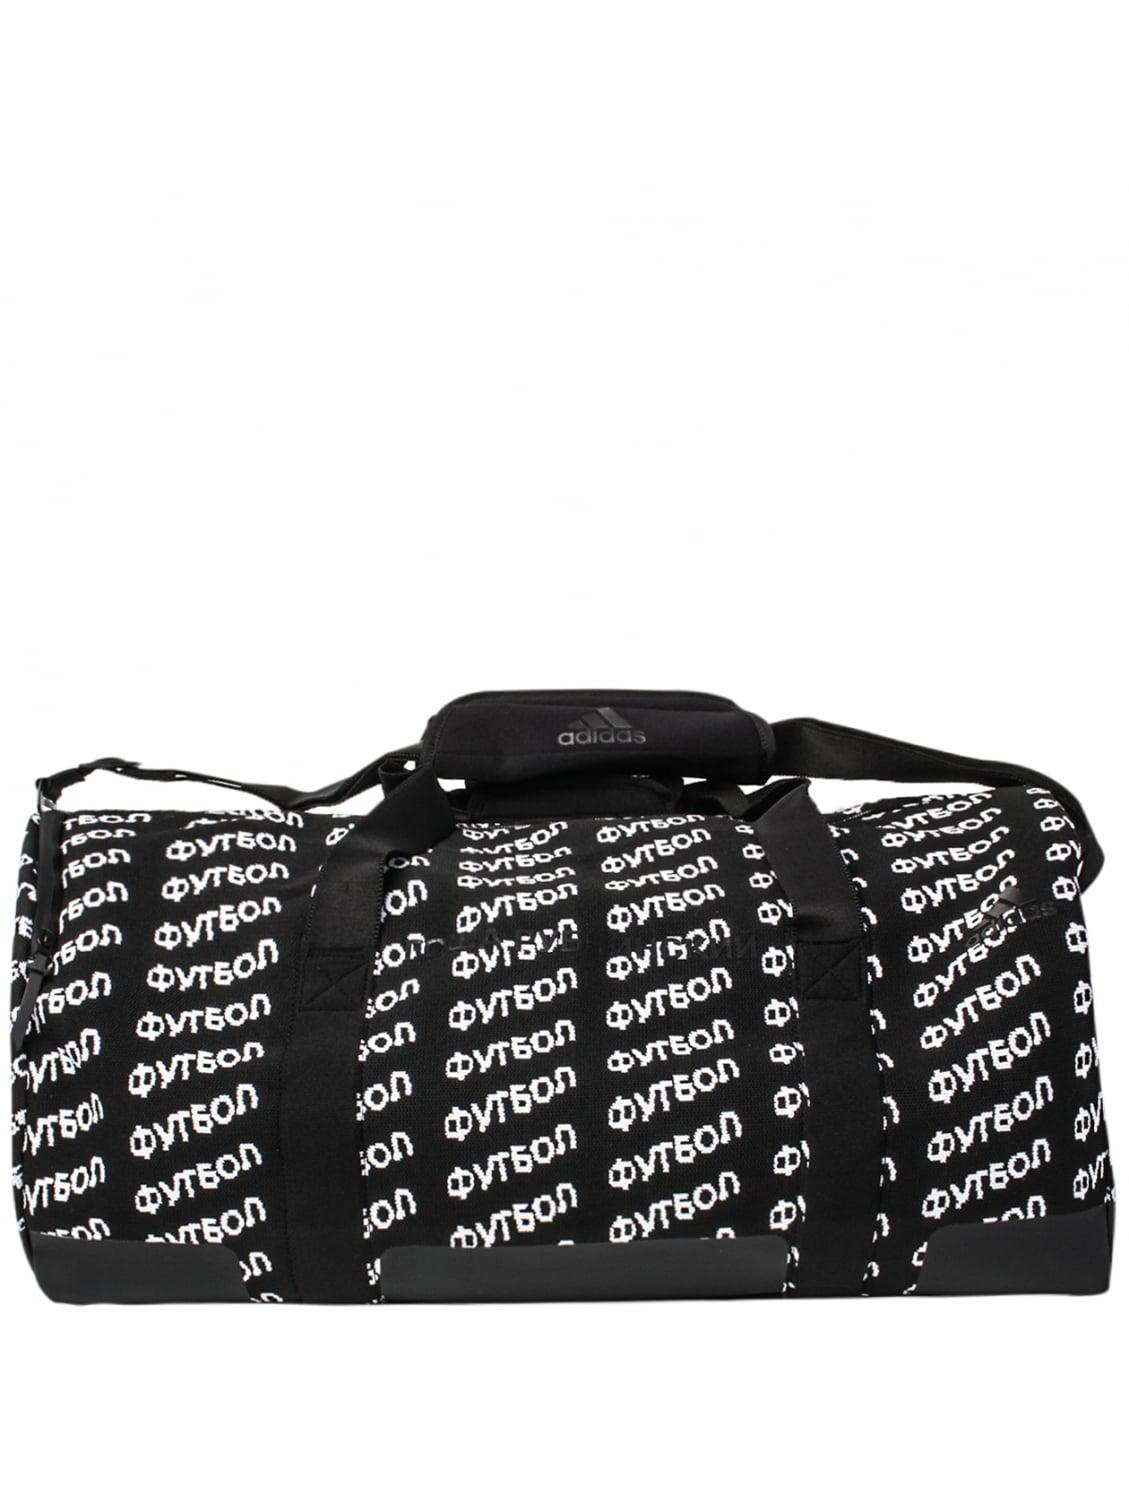 3626dcdccda7 Gosha Rubchinskiy Adidas Logo Team Bag Black in Black for Men - Lyst